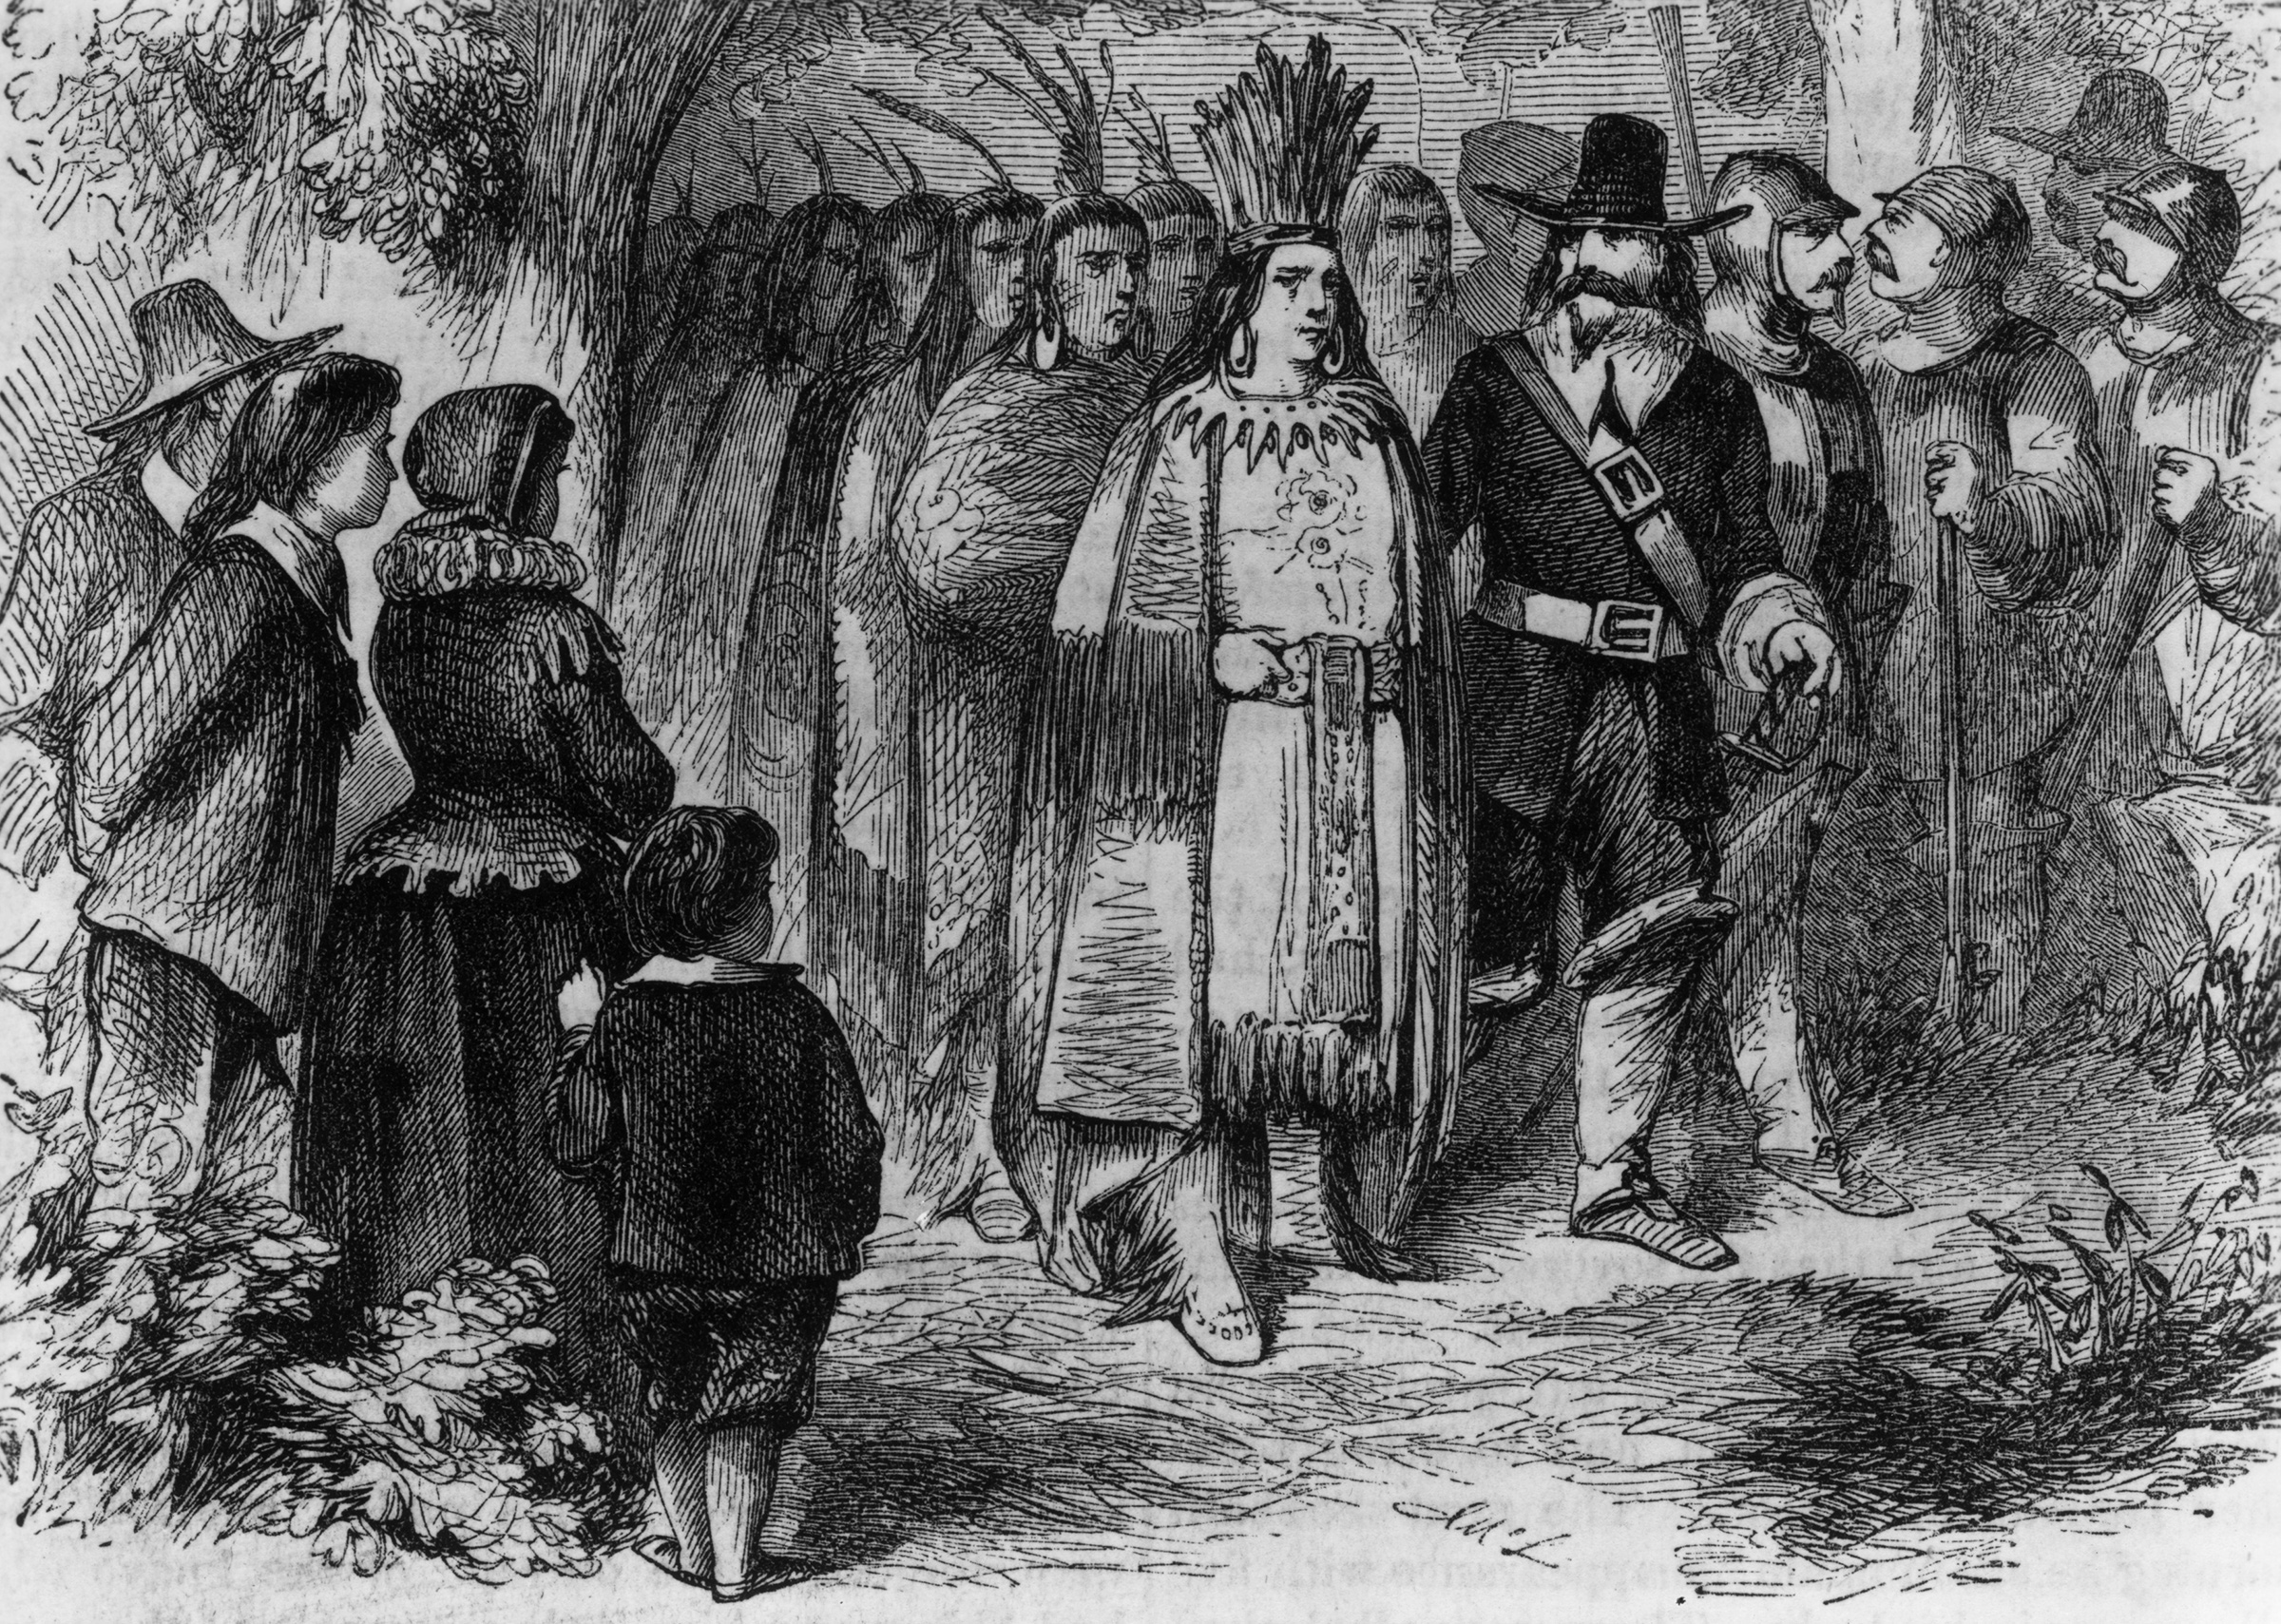 Circa 1621, Massasoit or Ousamequin, chief of the Wampanoag of Massachusetts and Rhode Island, pays a visit to the Pilgrims' camp at Plymouth Colony with his warriors after signing the earliest recorded treaty in New England